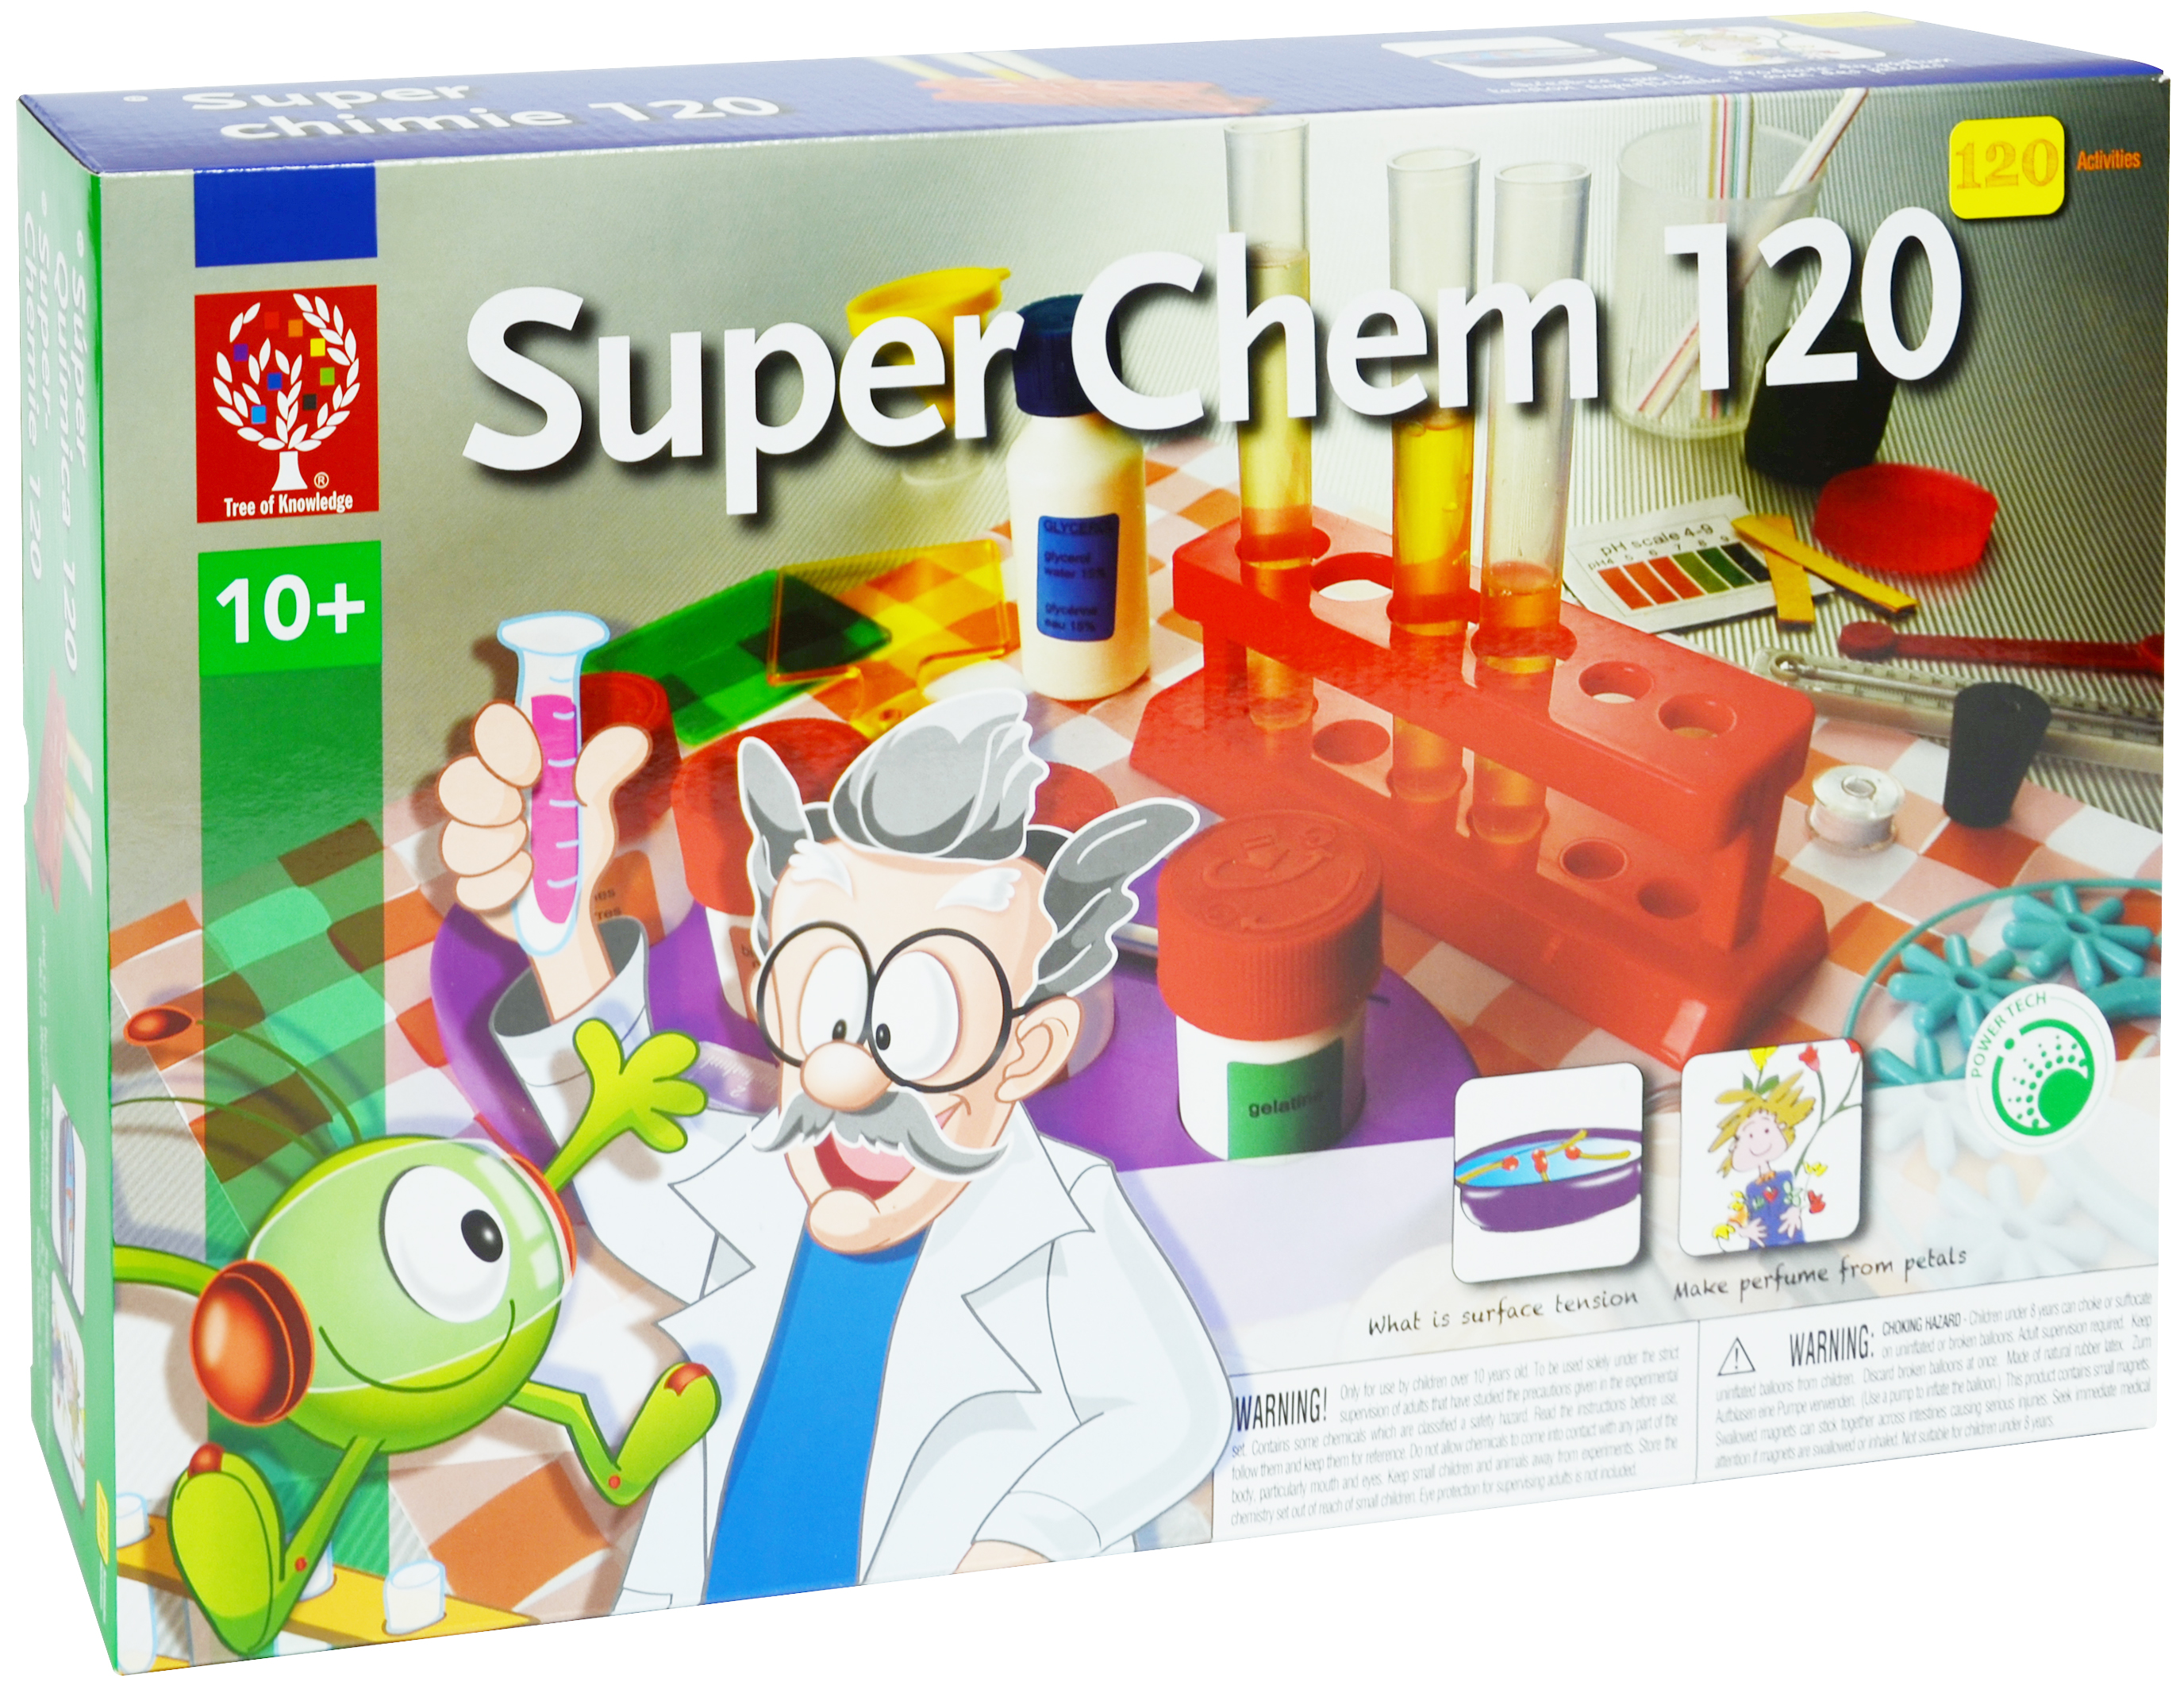 Super Chem 120 Educational Toys By Elenco Electronics Home Products Science Kits Snap Circuits Green